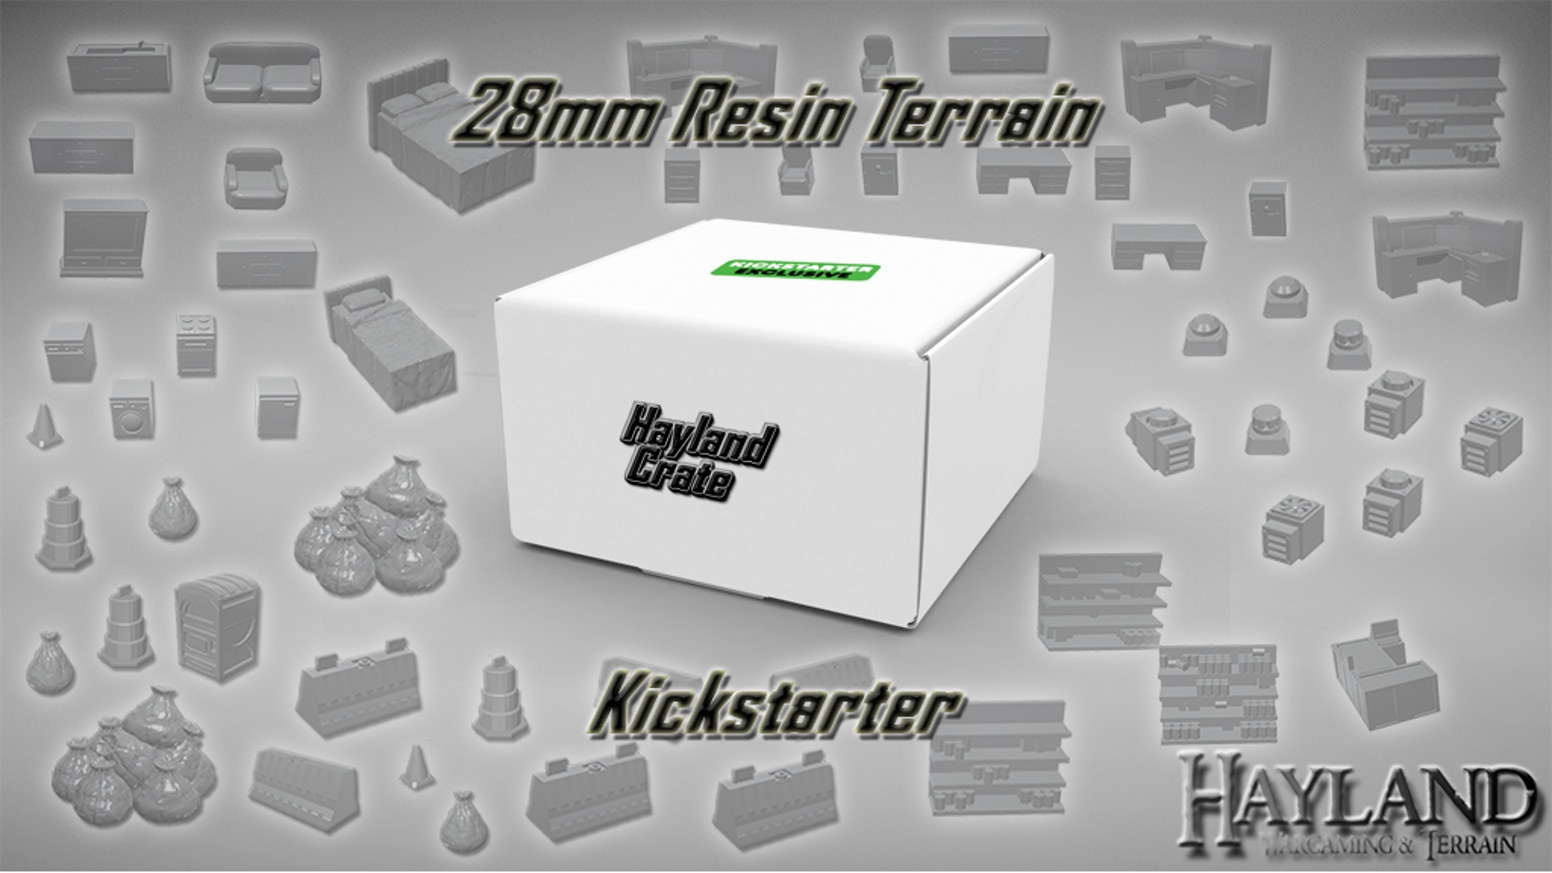 Bring your Table-top Games to Life! Affordable and Hand-Cast 28mm Resin terrain! - Modern, Wasteland, Sci-fi, Fantasy - EU Friendly!